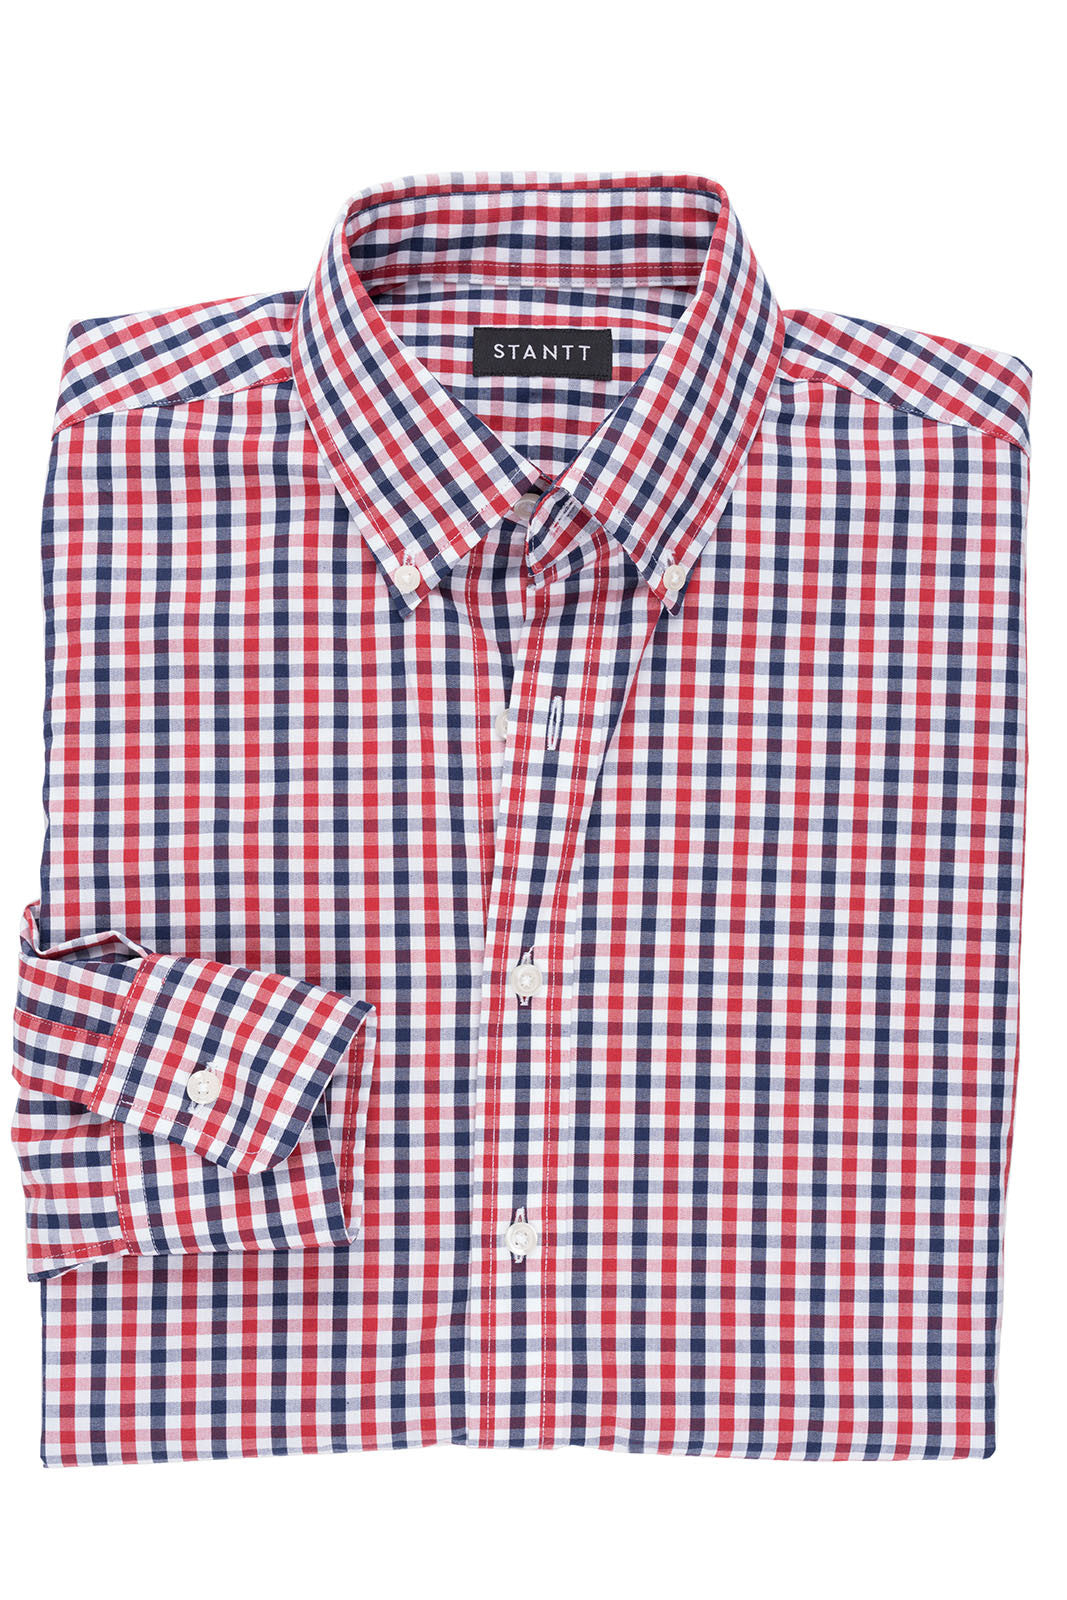 Cardinal Red and Navy Gingham: Semi-Spread Collar, Barrel Cuff